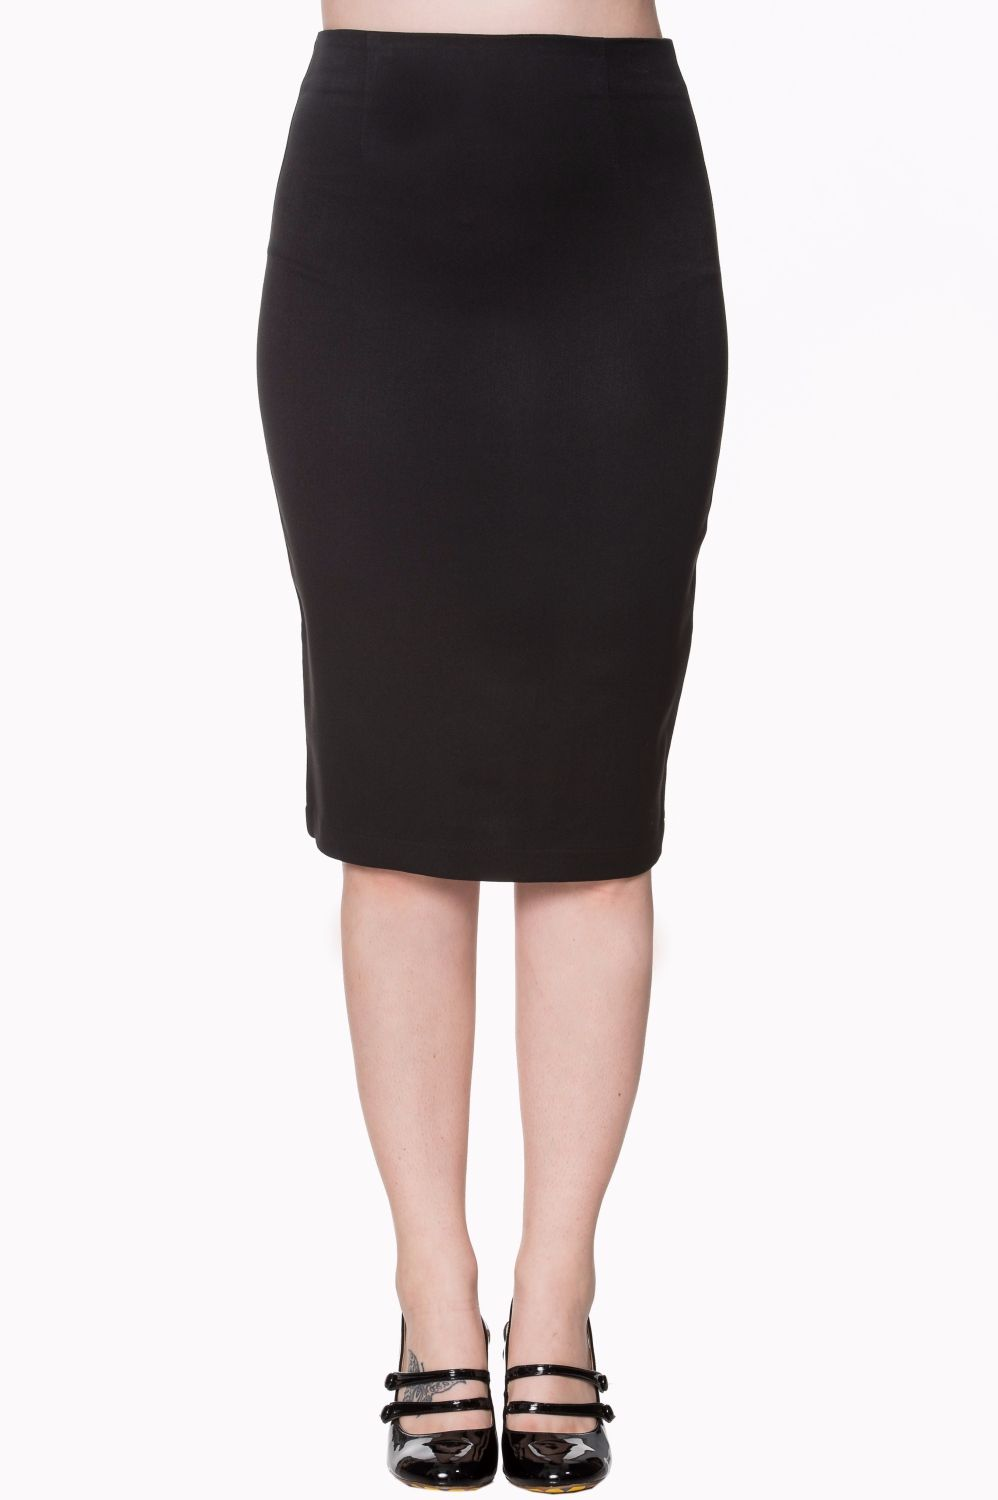 Dancing Days by Banned - Paula Vintage Style Pencil Skirt in Black